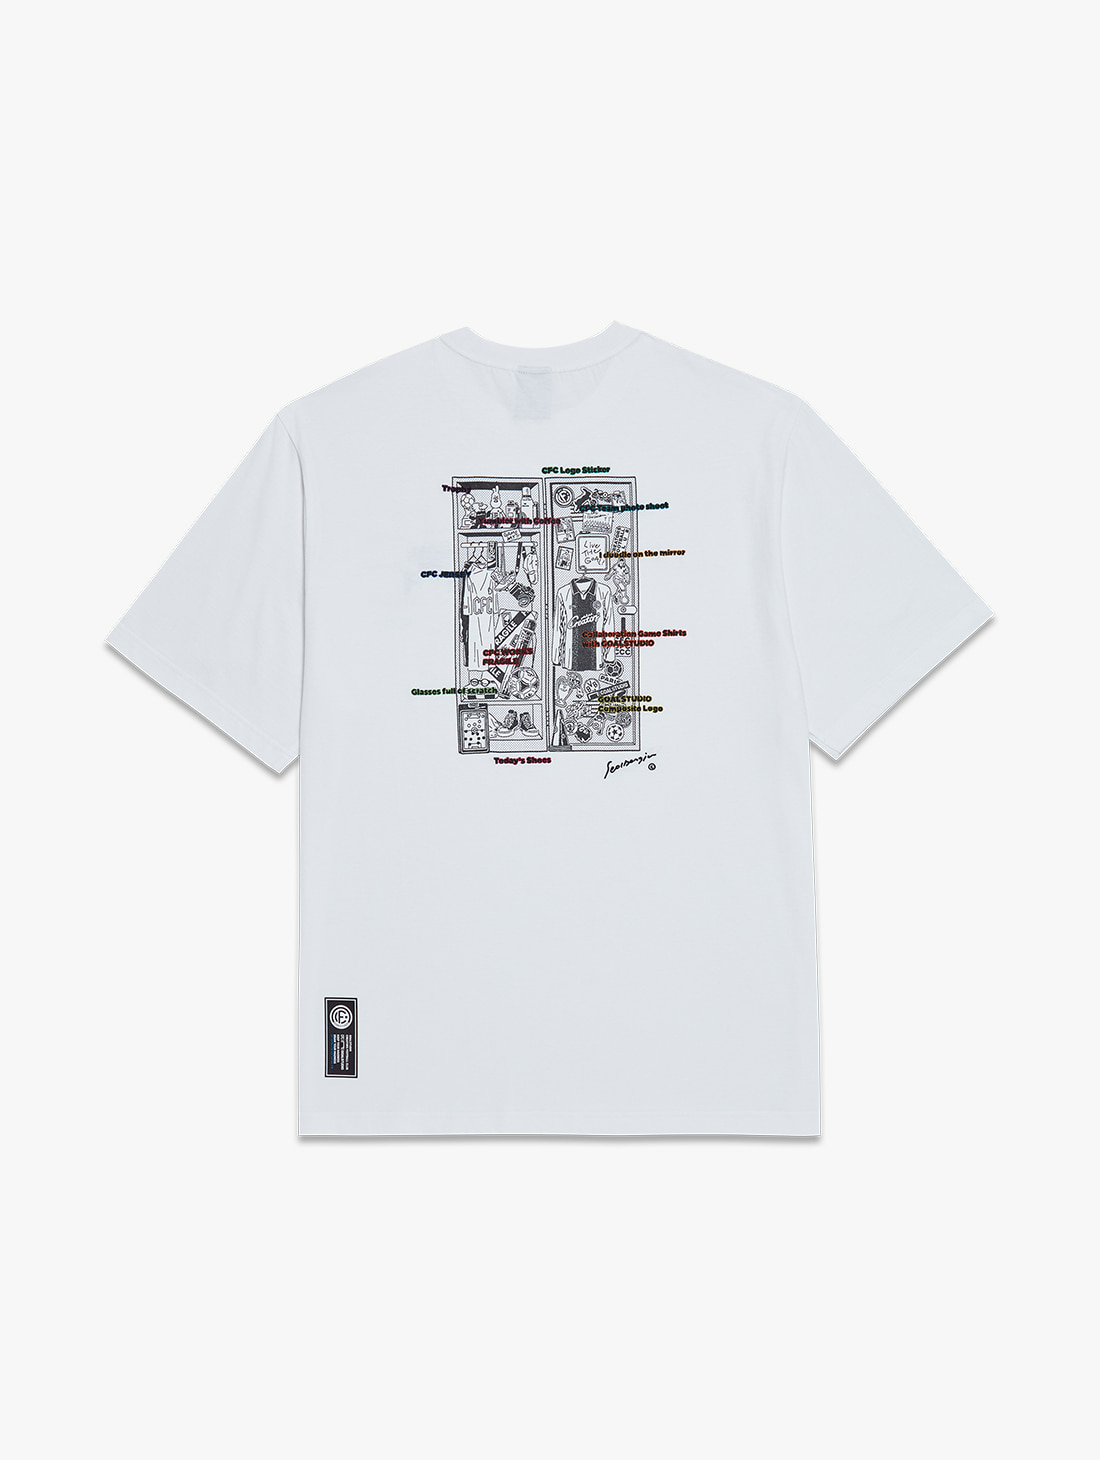 CFC LOCKER ROOM TEE